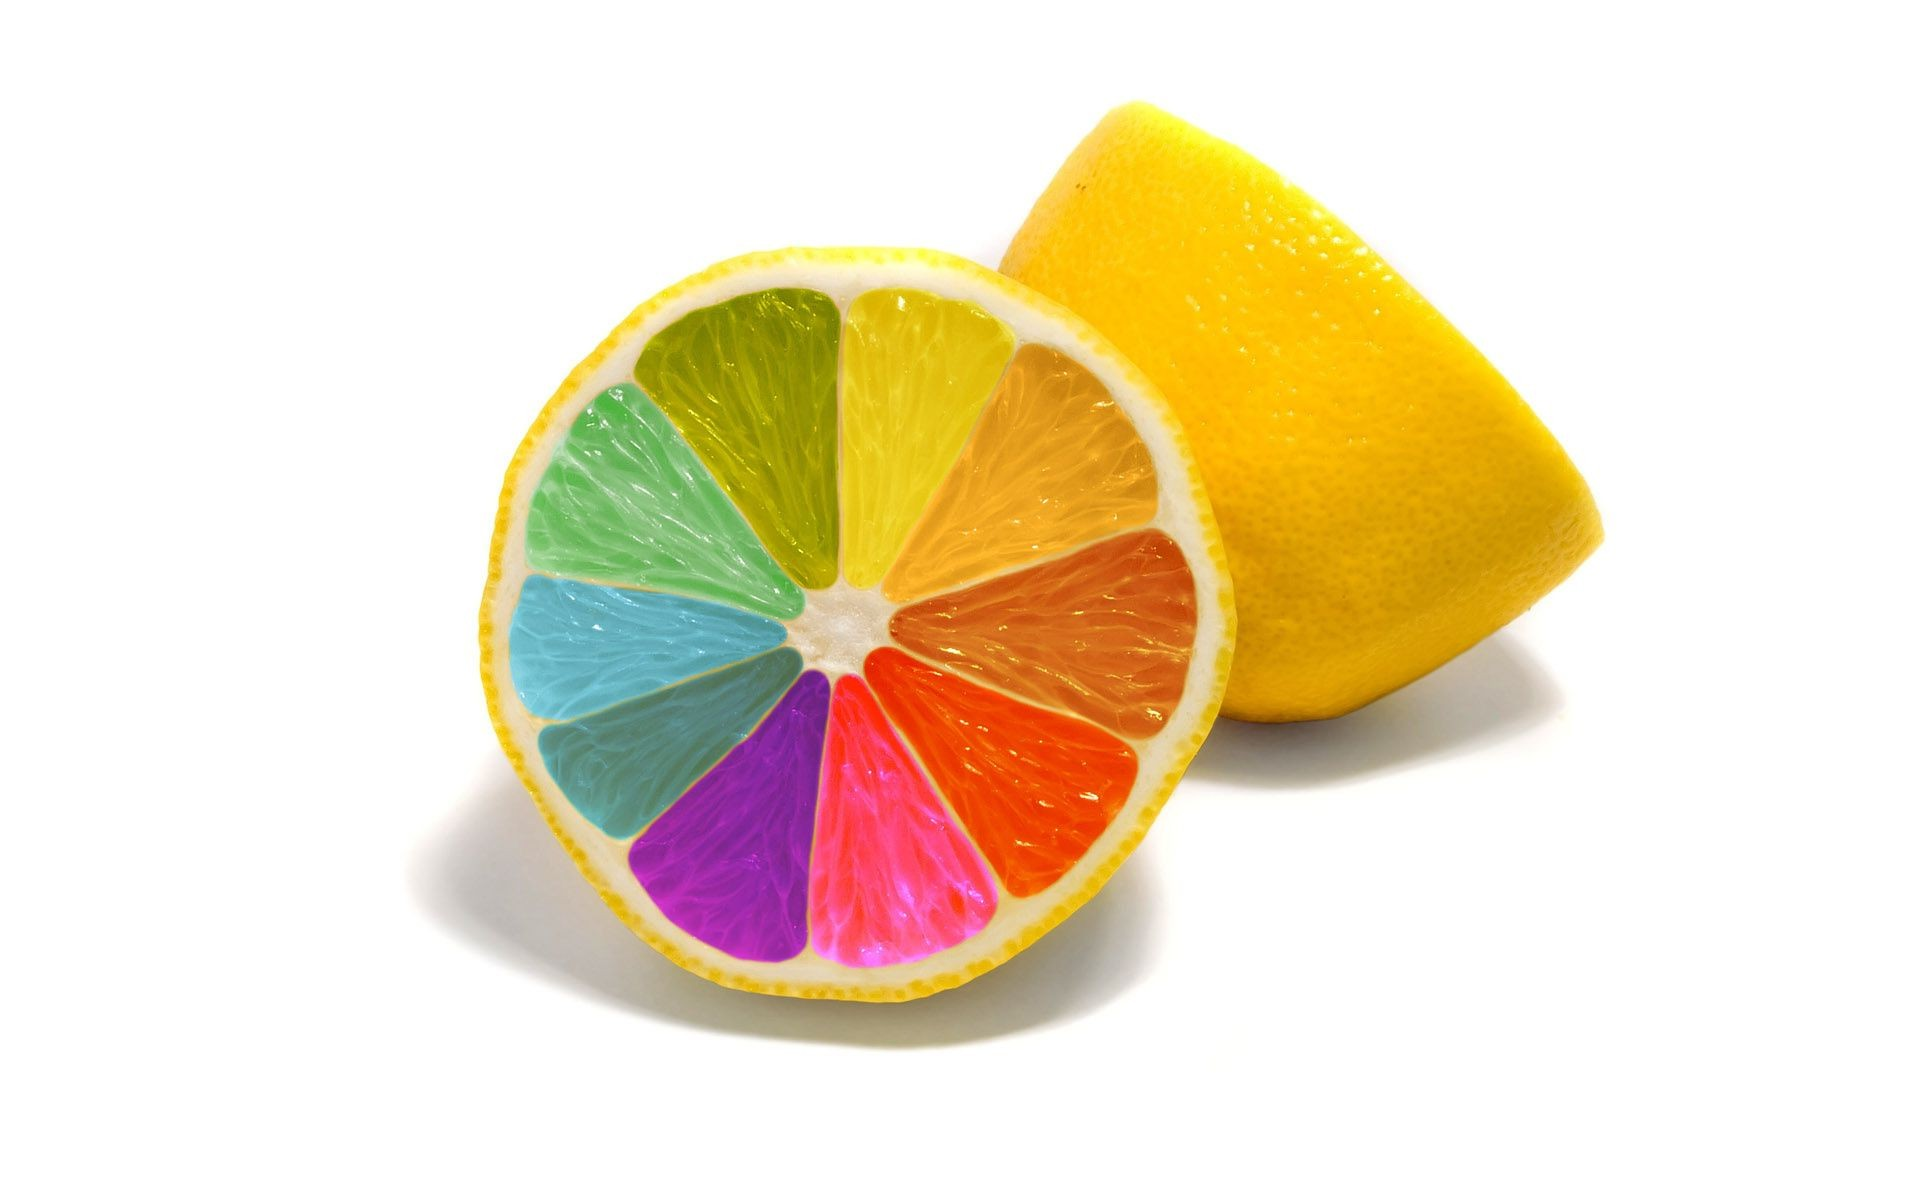 bright colors fruit juicy tropical juice slice food health isolated lemon